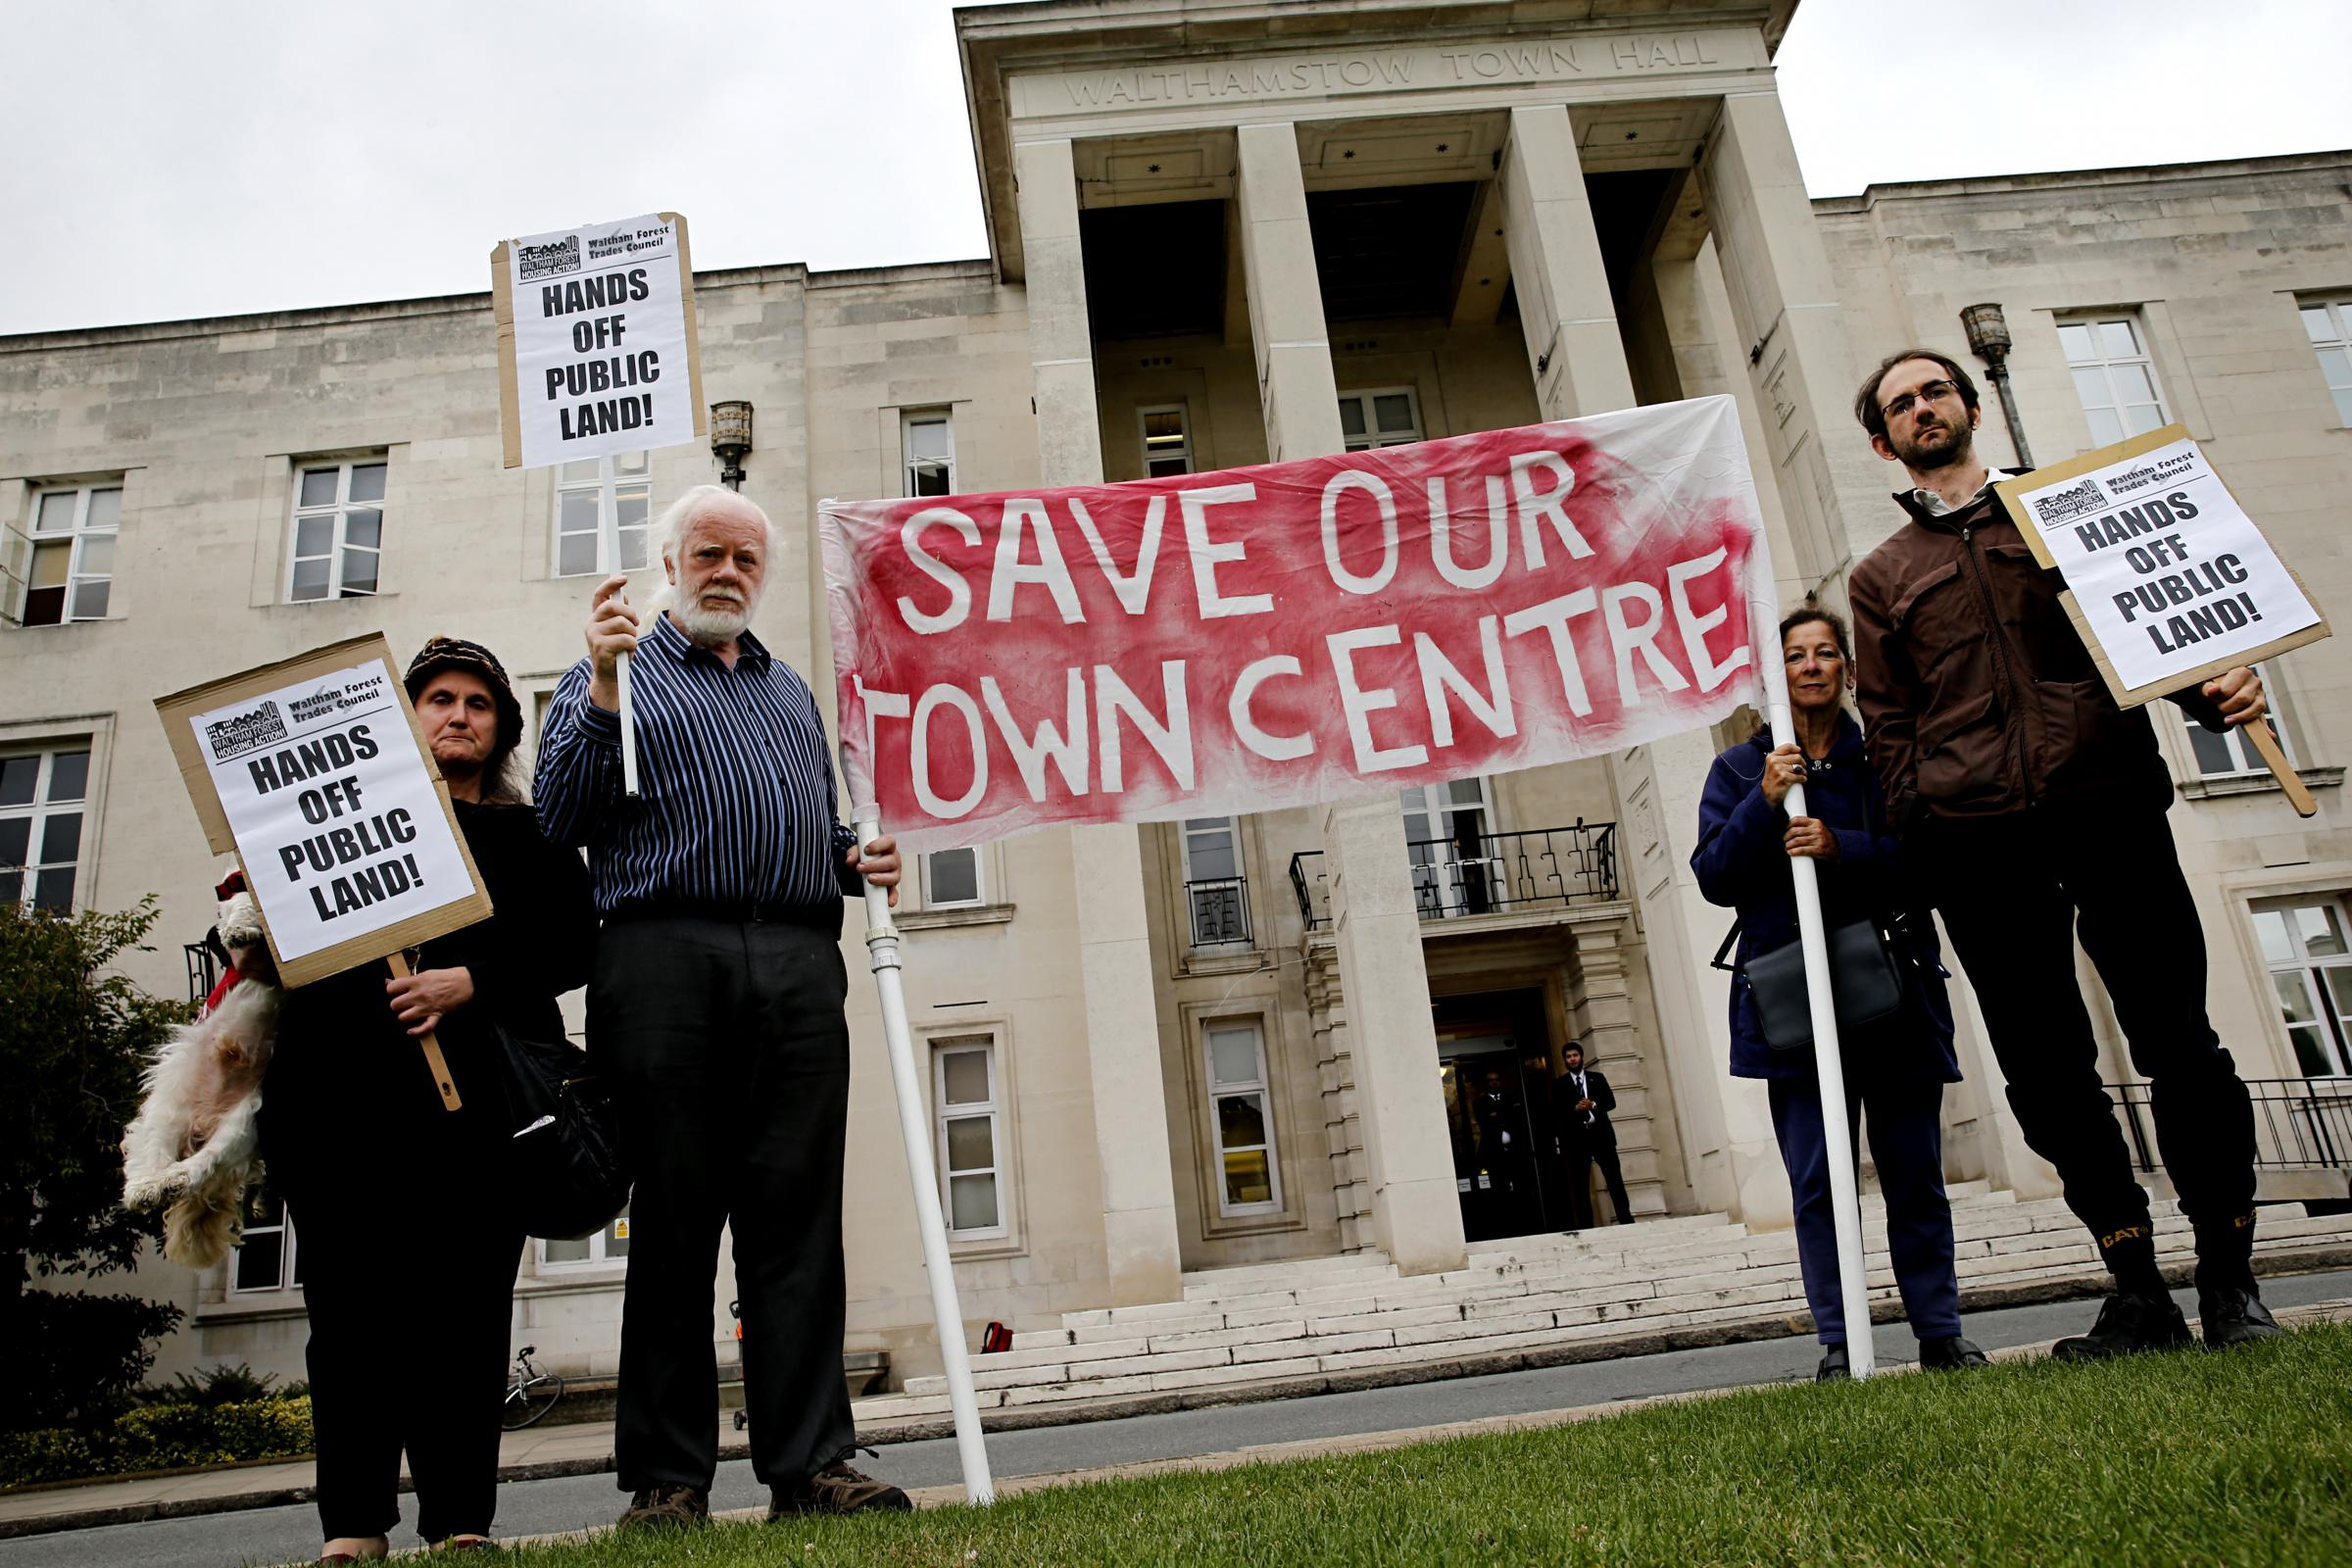 Campaigners will gather outside Waltham Forest Town Hall on Thursday to lobby councillors for a full council vote on plans for tower blocks in Walthamstow.